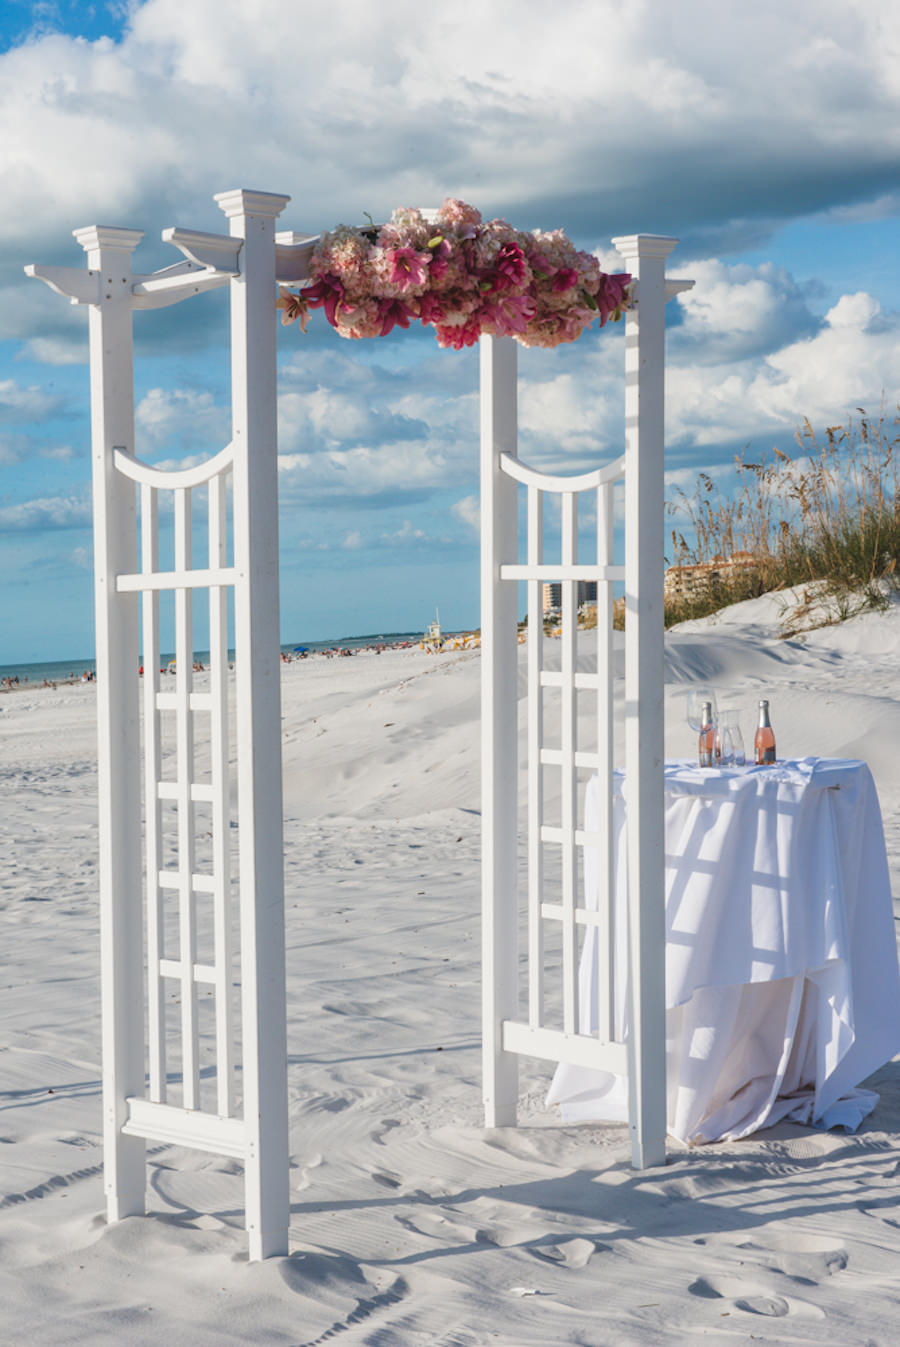 Outdoor Oceanfront Wedding Ceremony with White Arch Floral Decor with Pink and Blush Pink Flowers   Outdoor Waterfront Hotel Wedding Venue Hilton Clearwater Beach